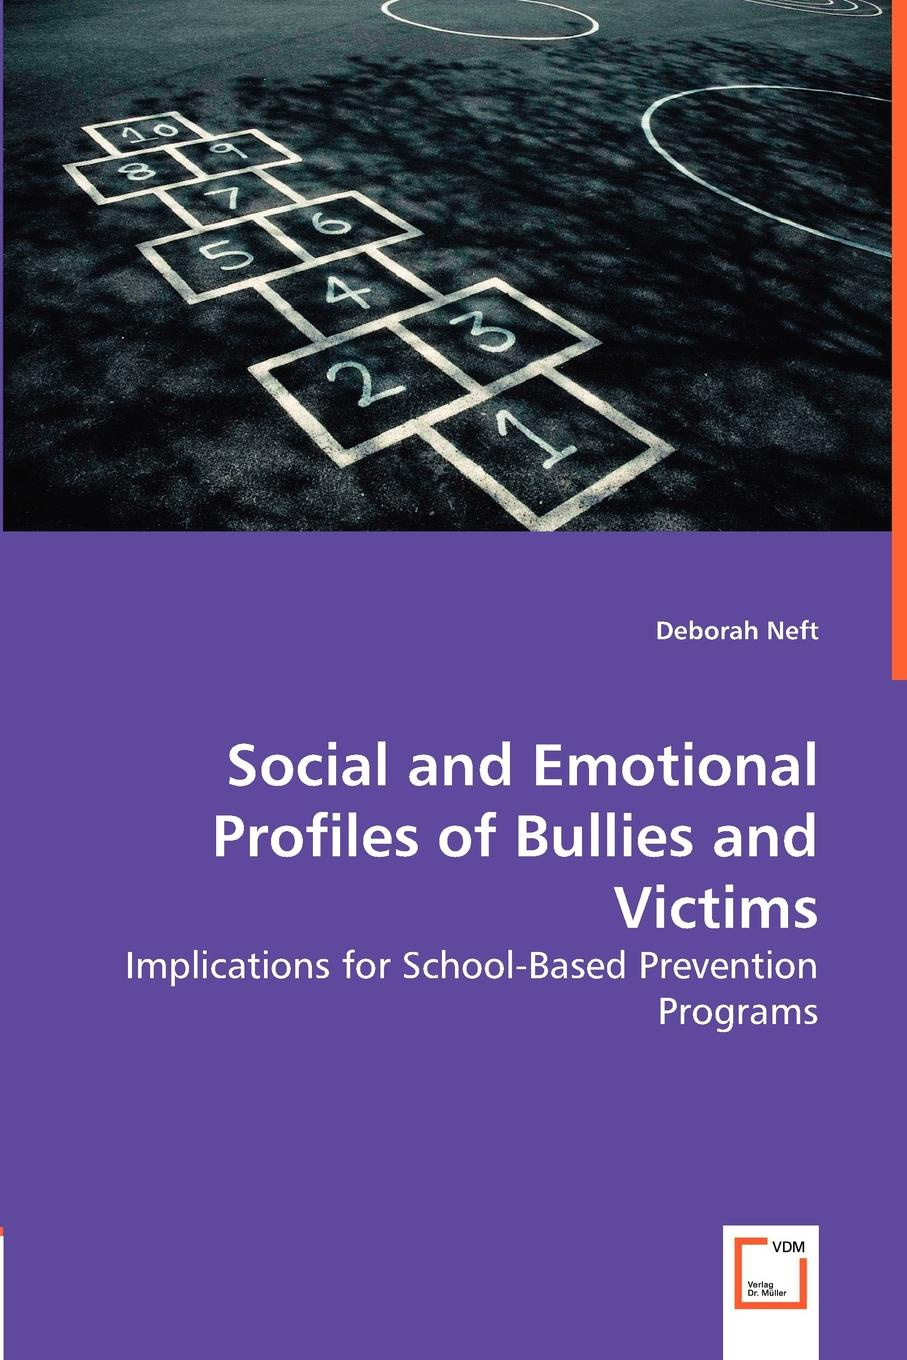 Deborah Neft Social and Emotional Profiles of Bullies and Victims stephen cosgrove pickles and the p flock bullies